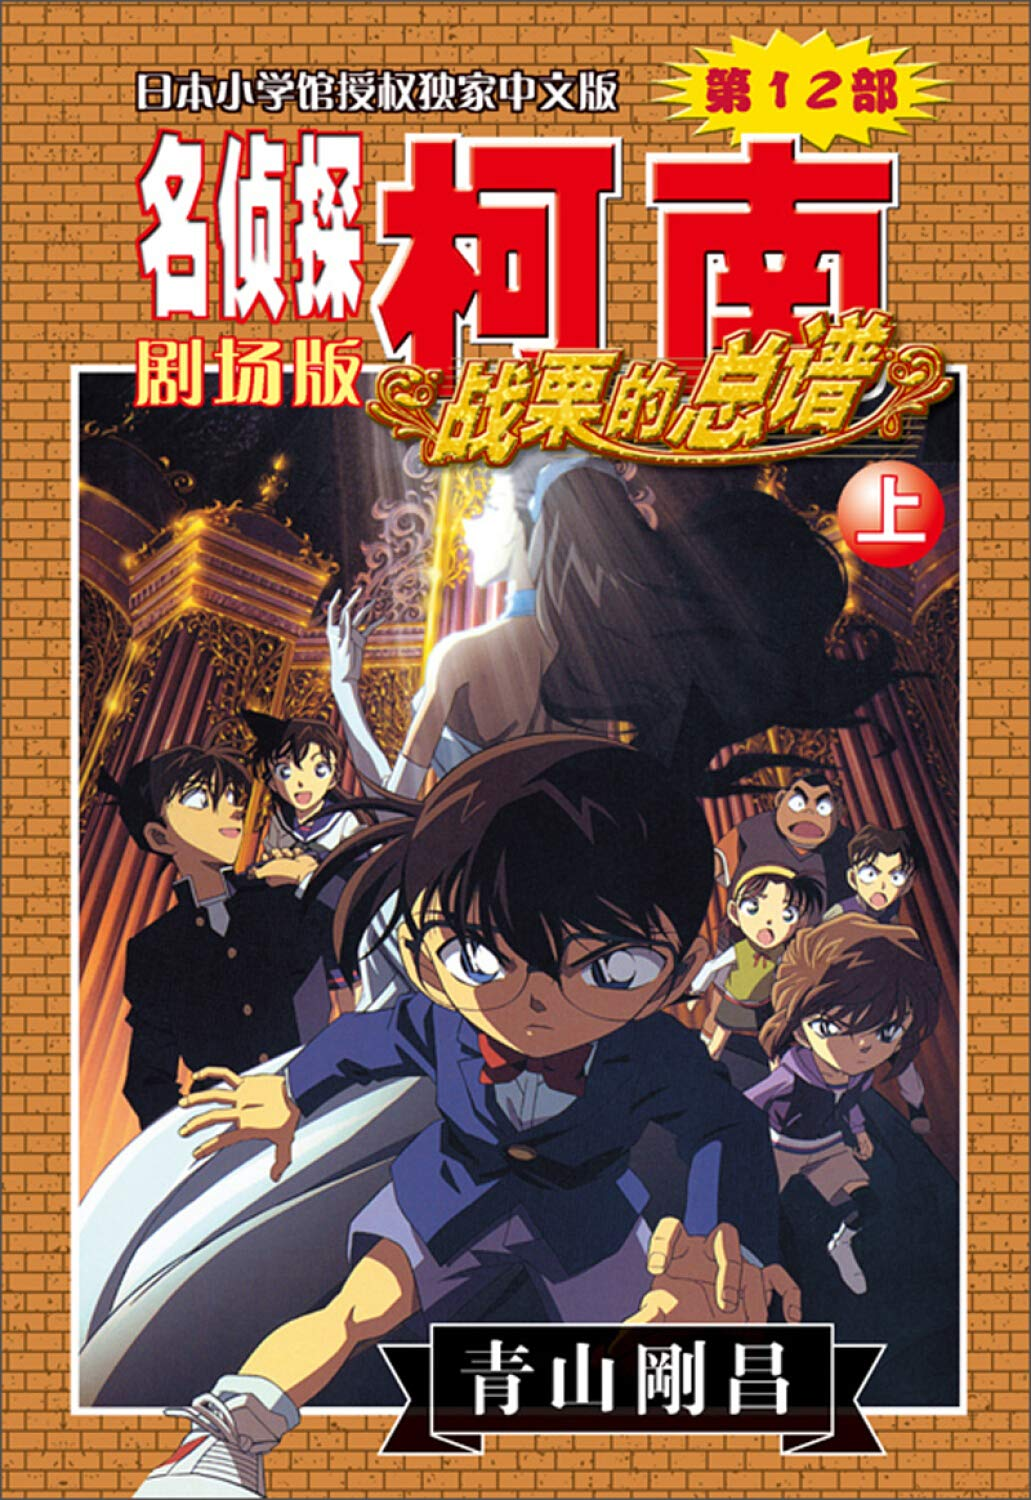 Full Score of Fear - Detective Conan - the first part-the 12th one - The  Movie (Chinese Edition): qing shan gang chang: 9787544512428: Amazon.com:  Books